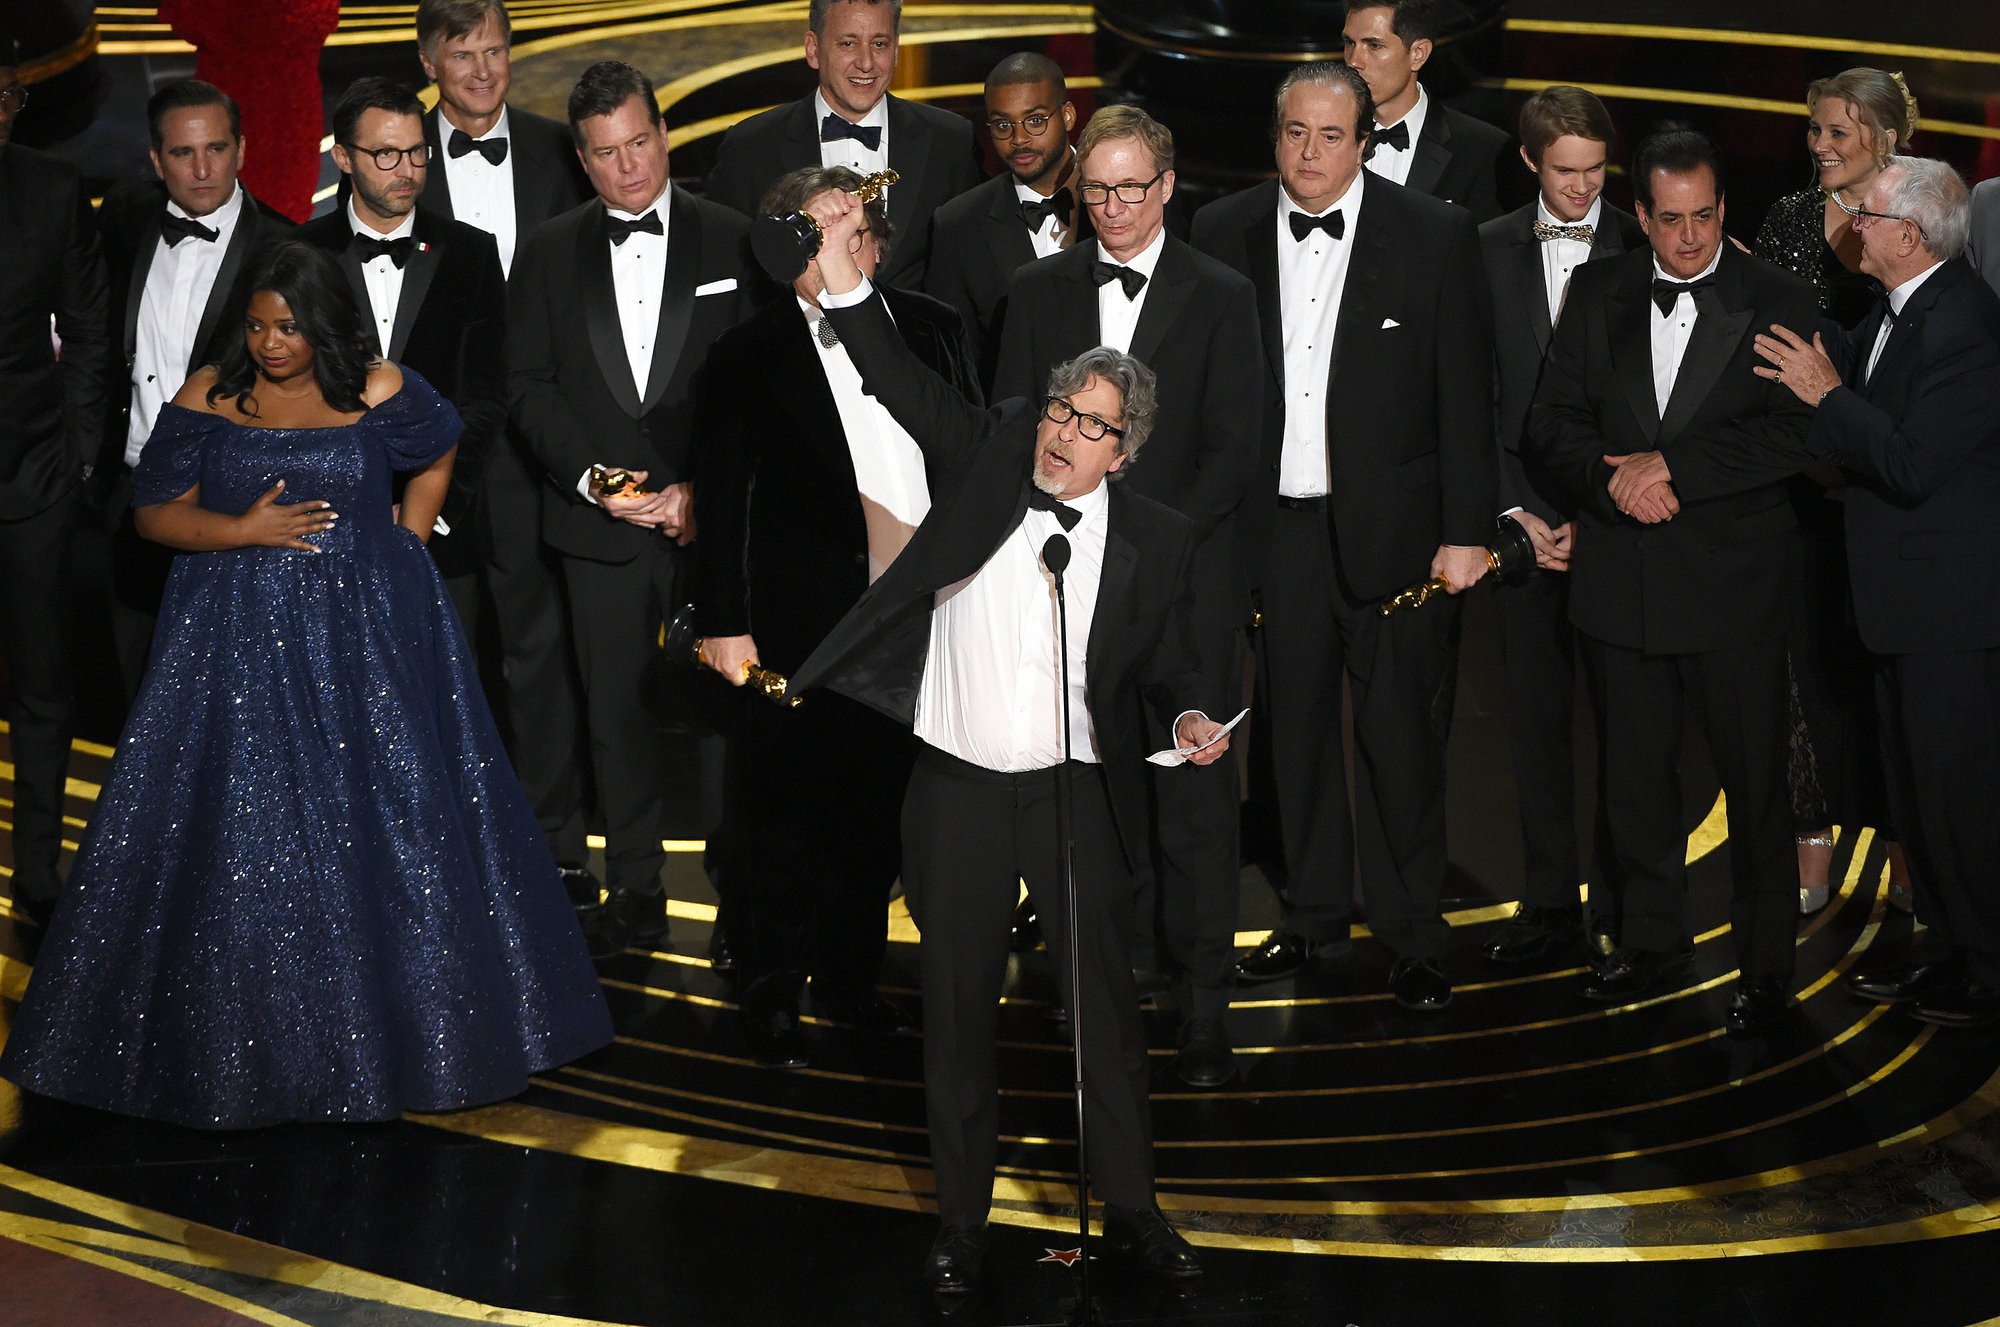 Green Book' wins best picture at the Oscars in an upset